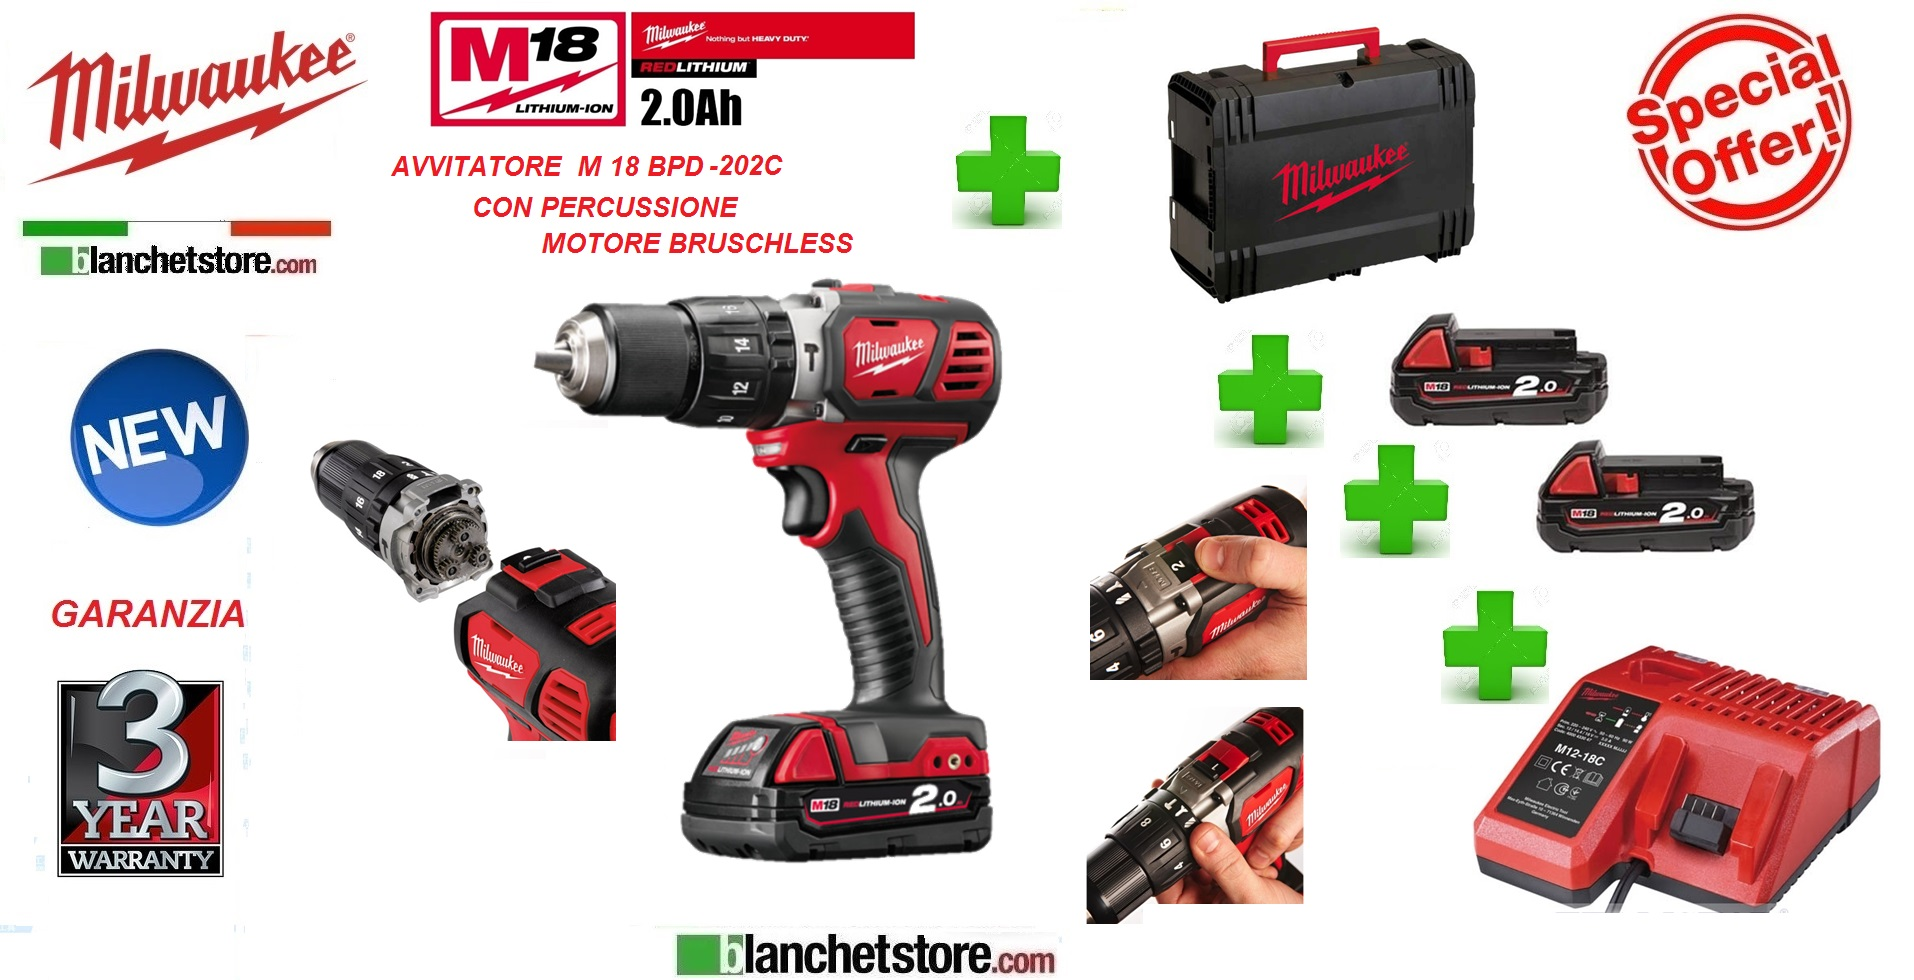 Avvitatore Milwaukee M18 BPD-202C 18V 2A c/percuss.